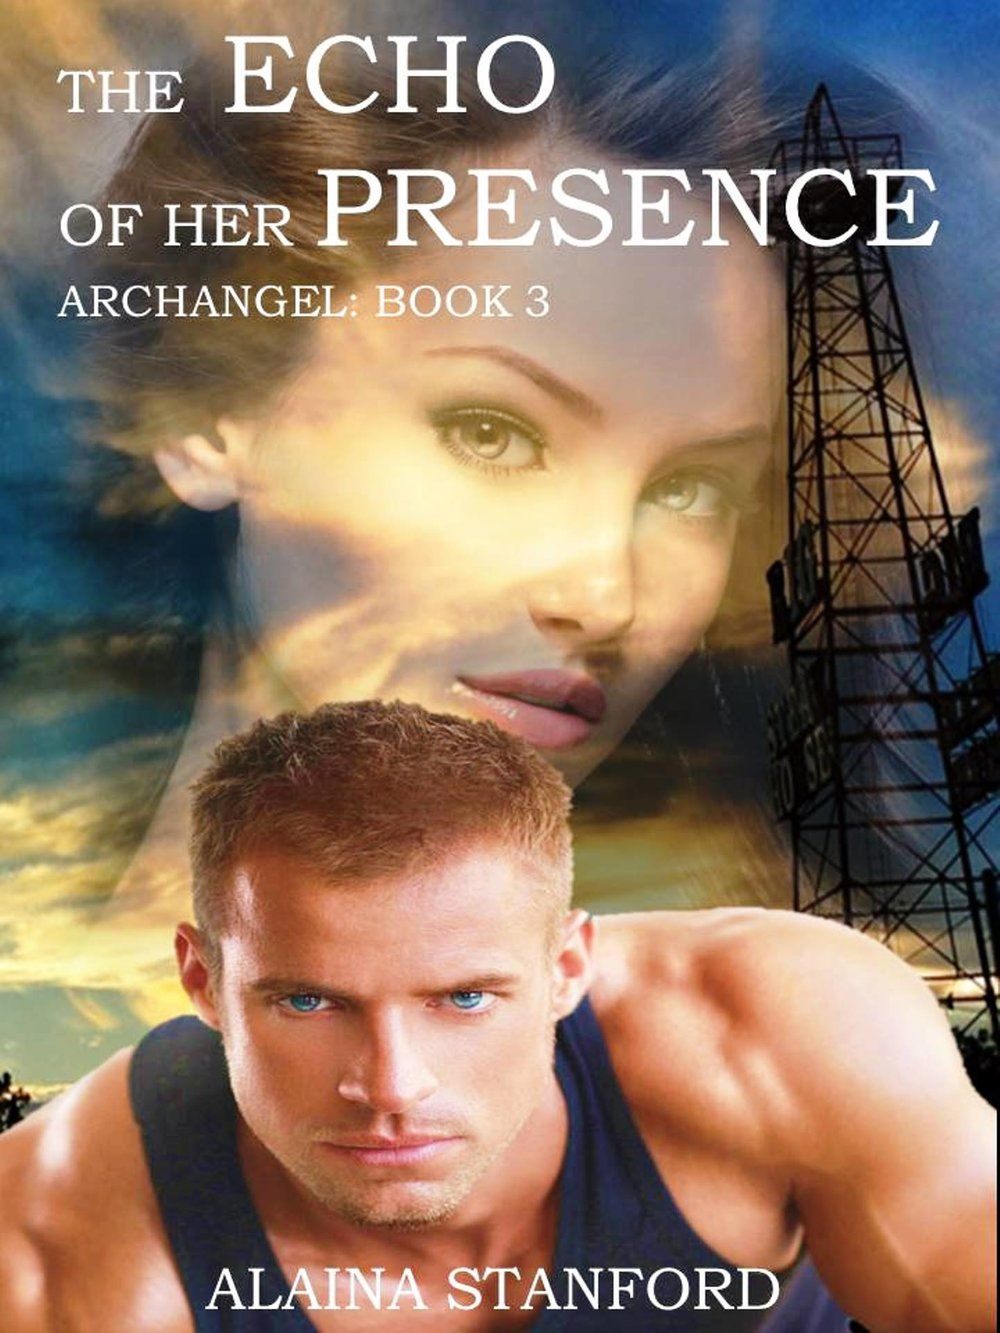 echo of her presence cover 2.jpg